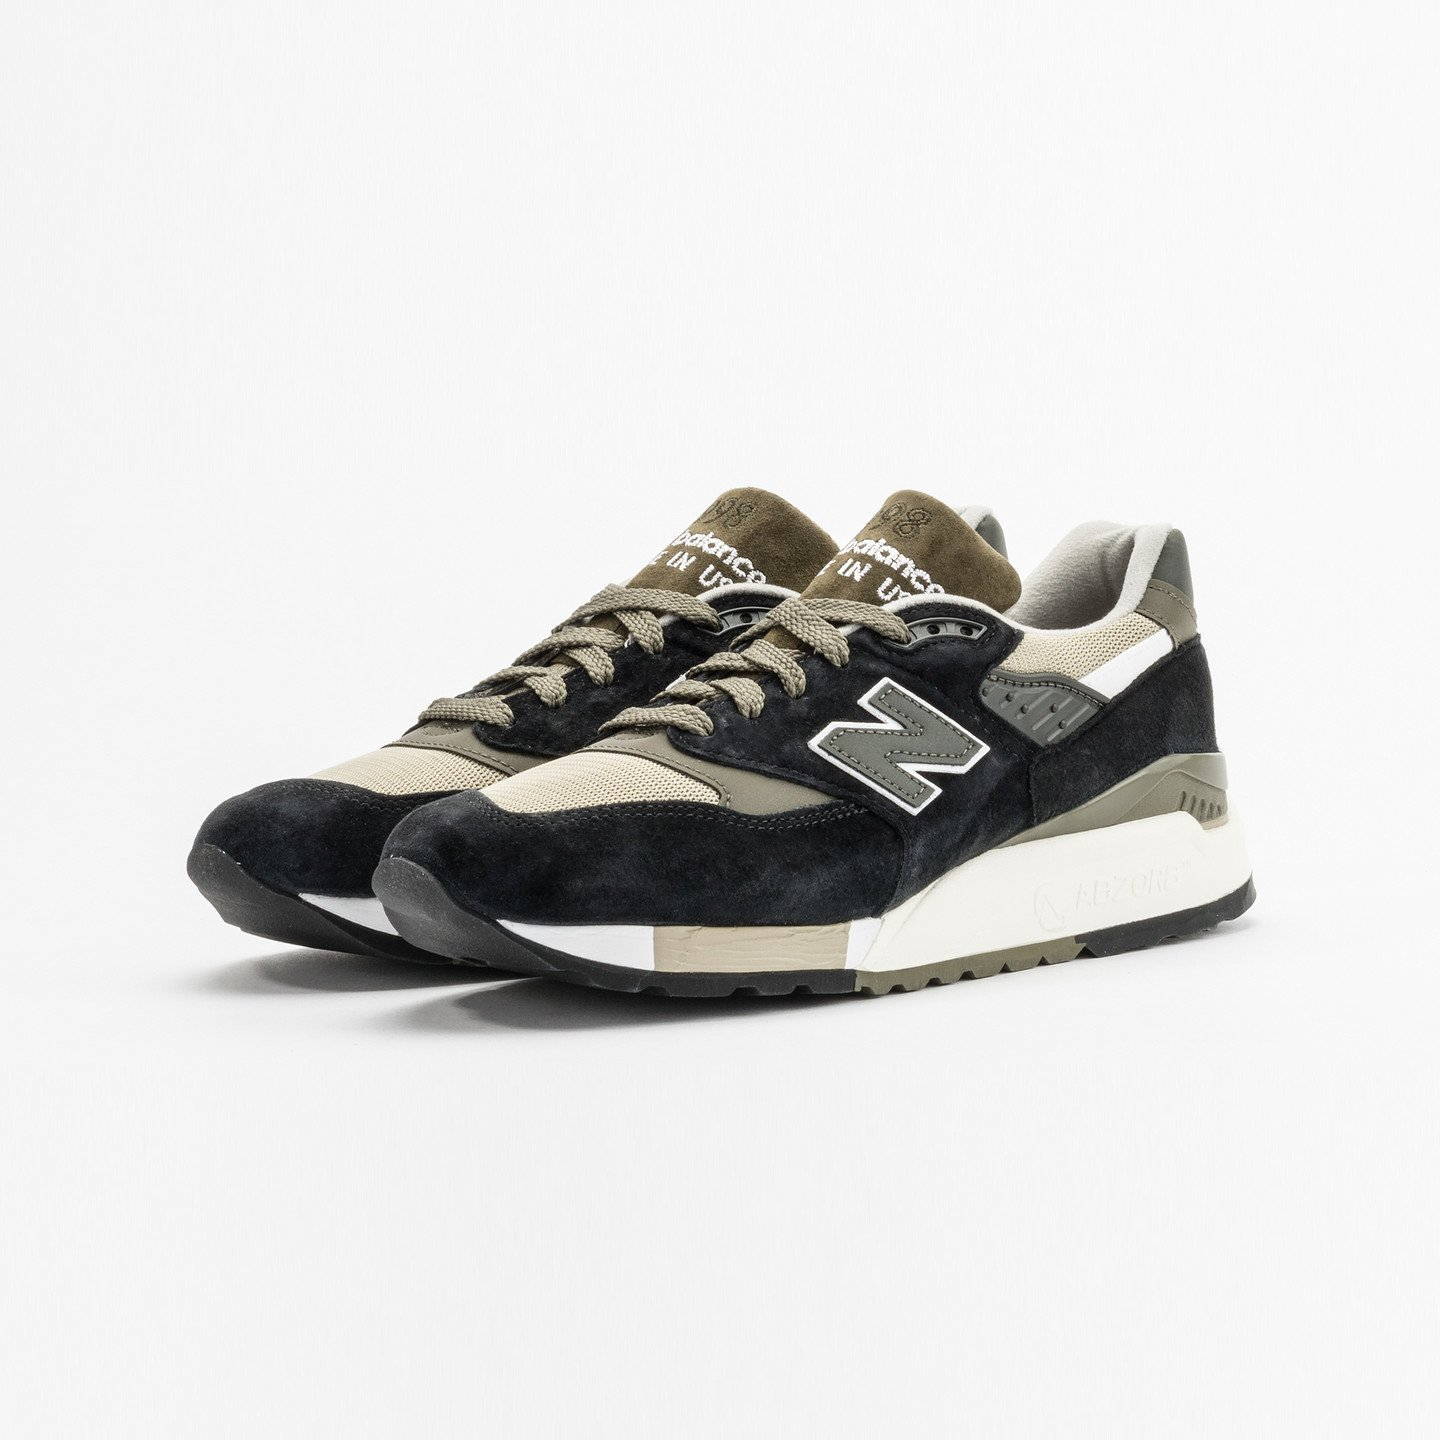 New Balance M998 Made in USA Olive / Black M998CTR-44